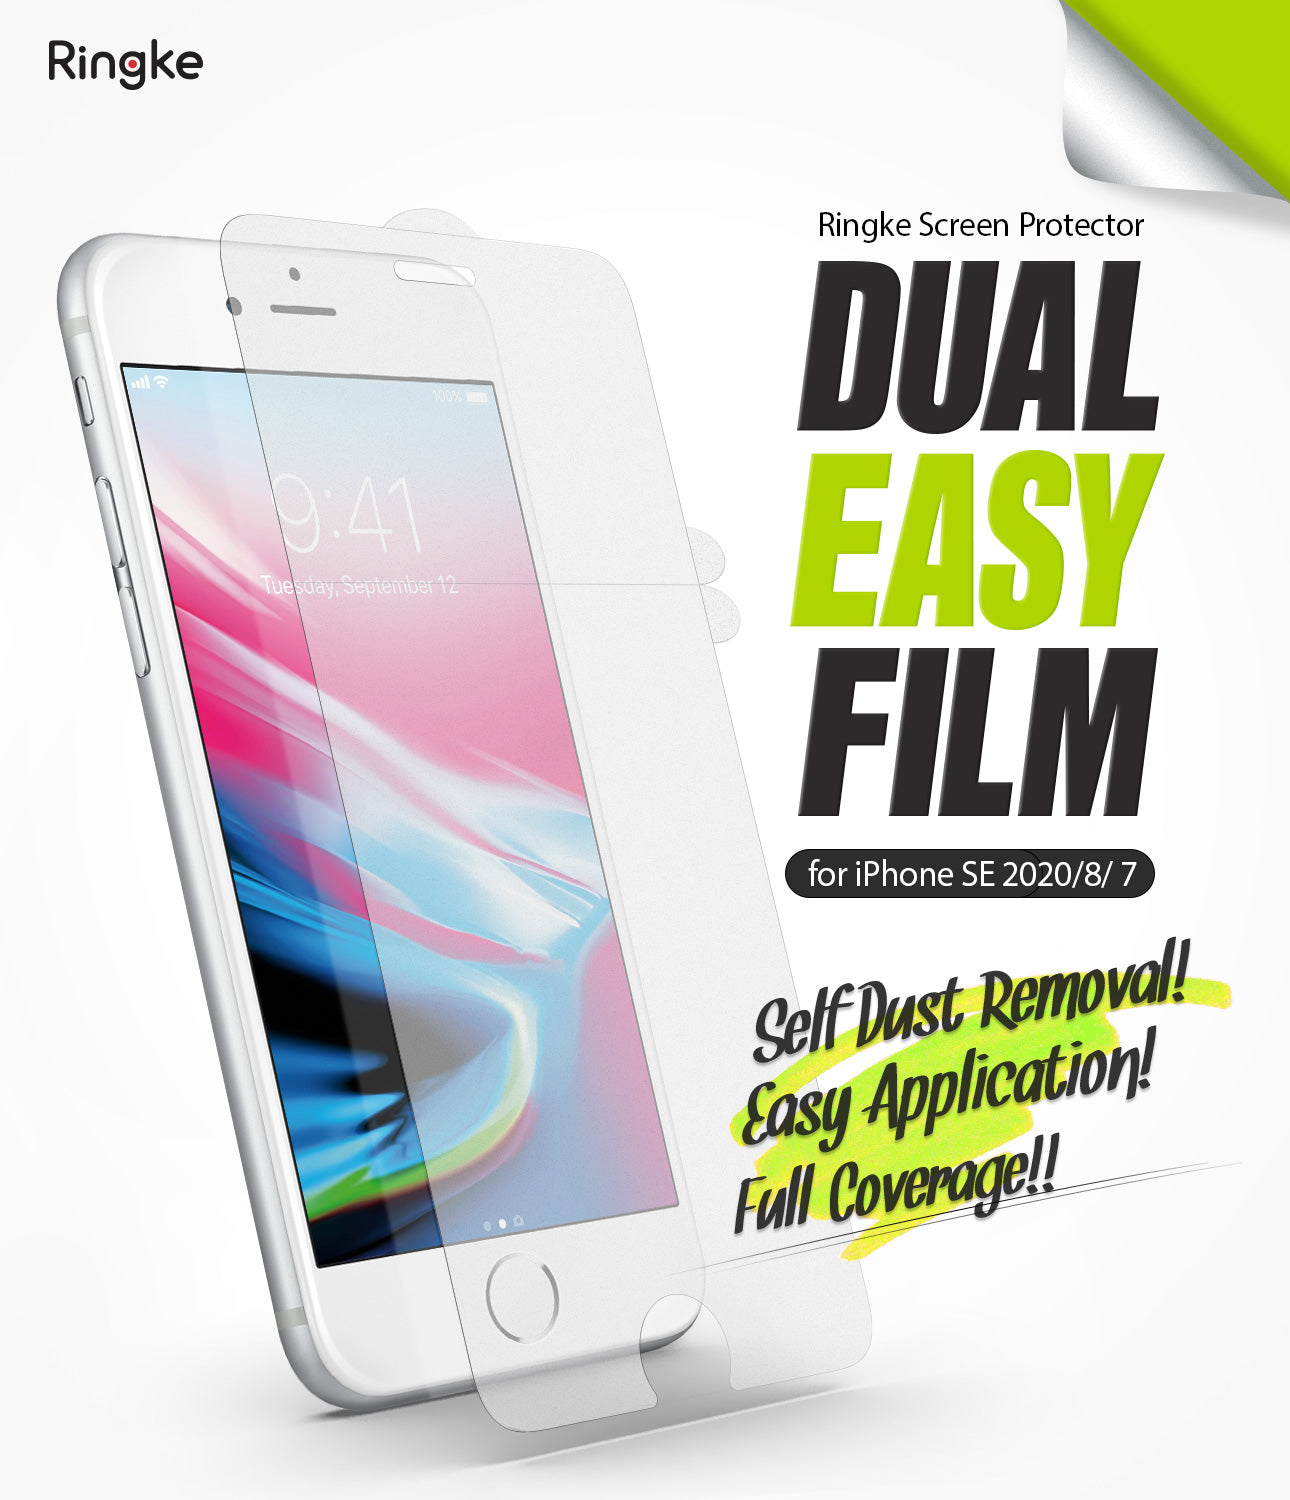 ringke dual easy film screen protector designed for apple iphone 7 / iphone 8 / iphone se 2020